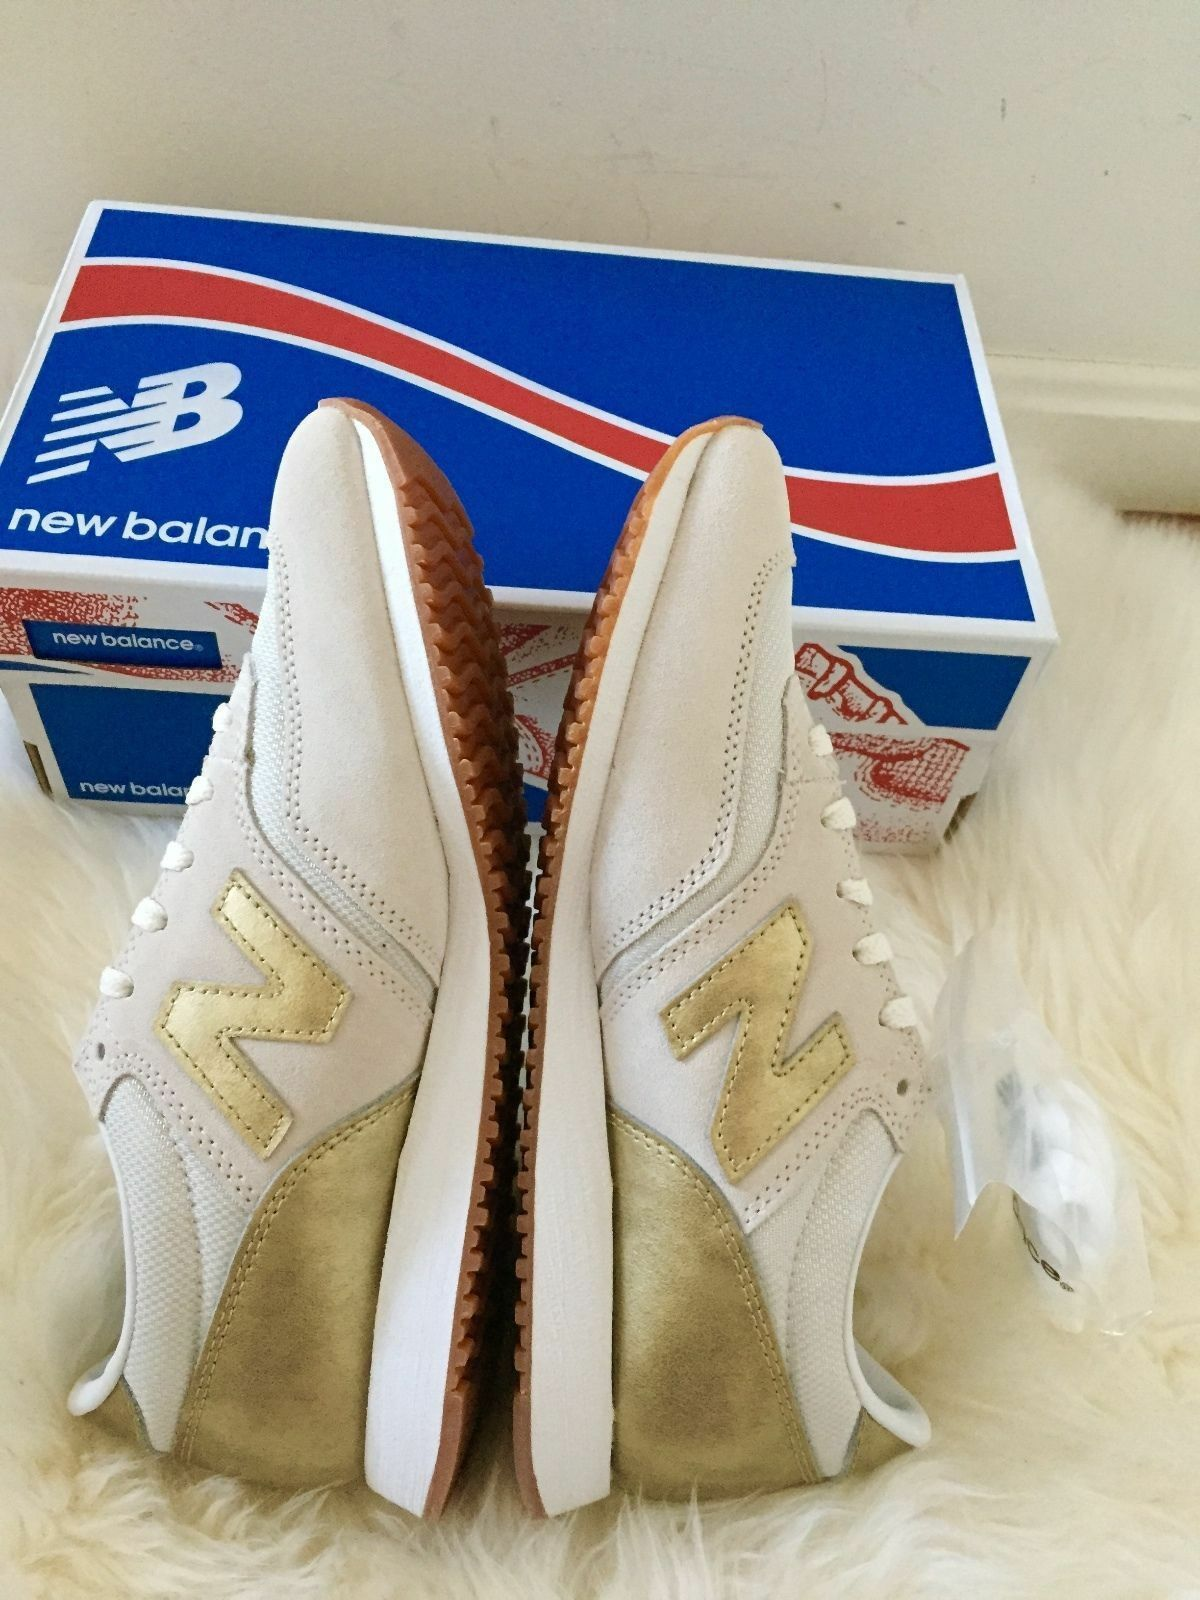 New in Box New balance 520 for J. CREW Baskets Or sel 6 6.5 7 7.5 8 8.5 9 9.5 10